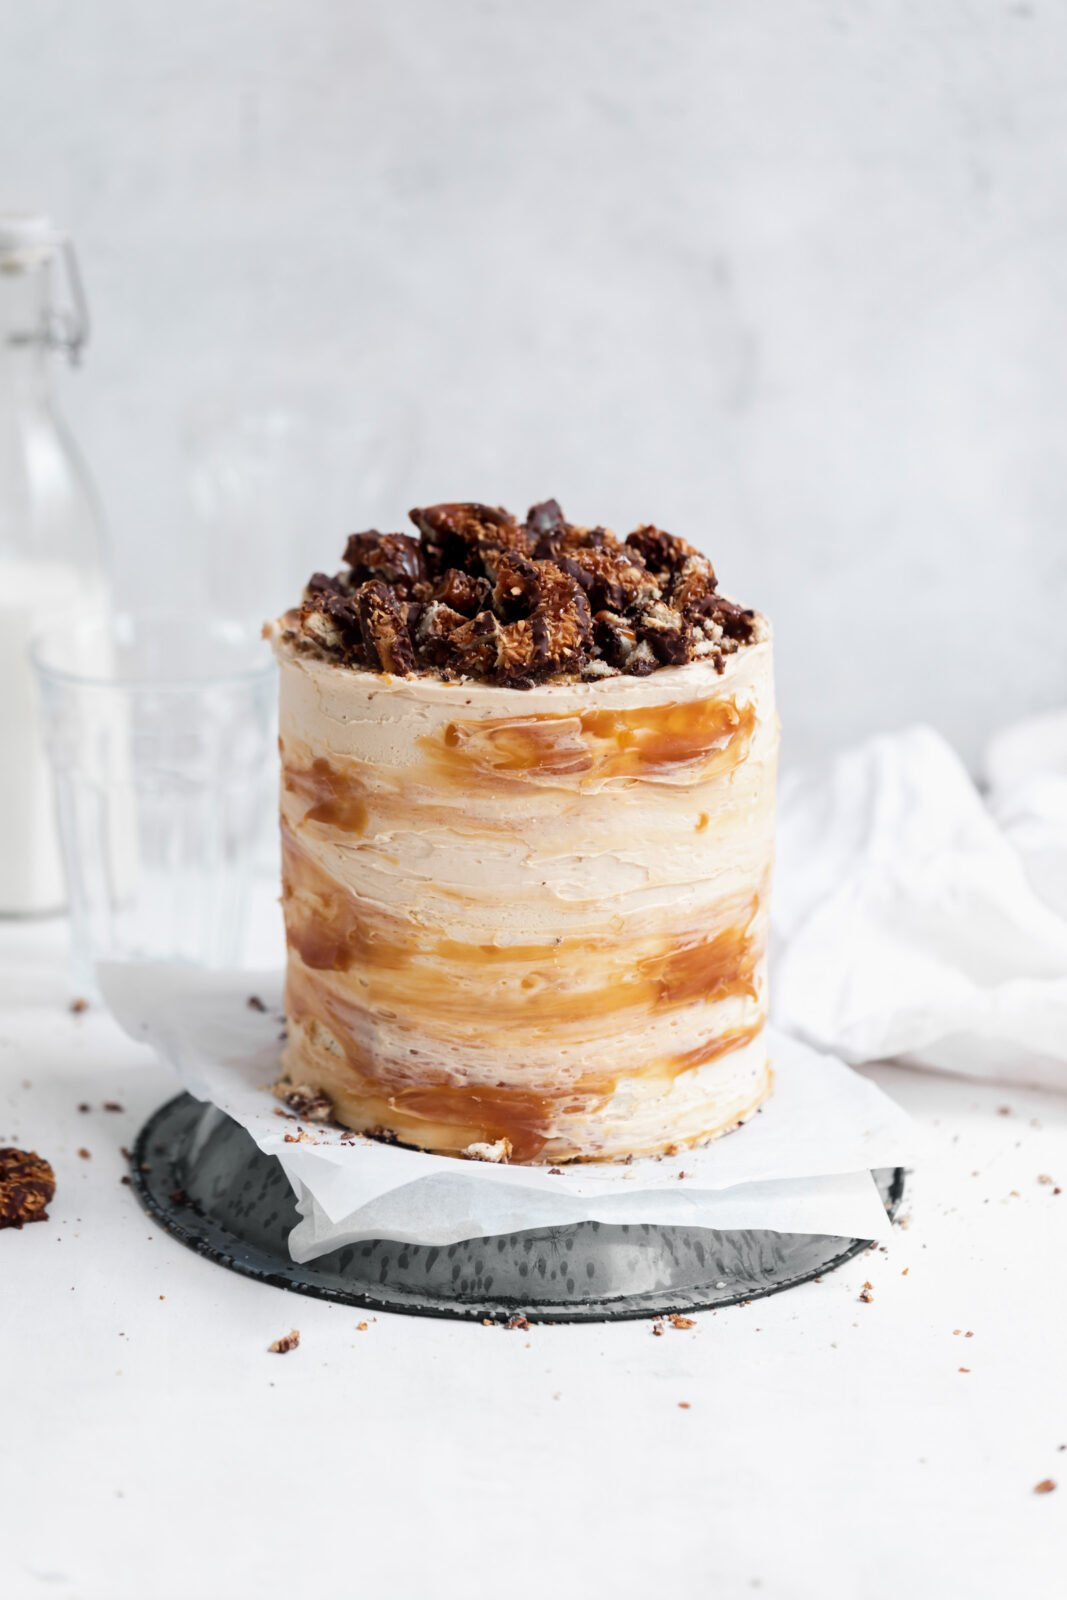 samoa cake with caramel and coconut